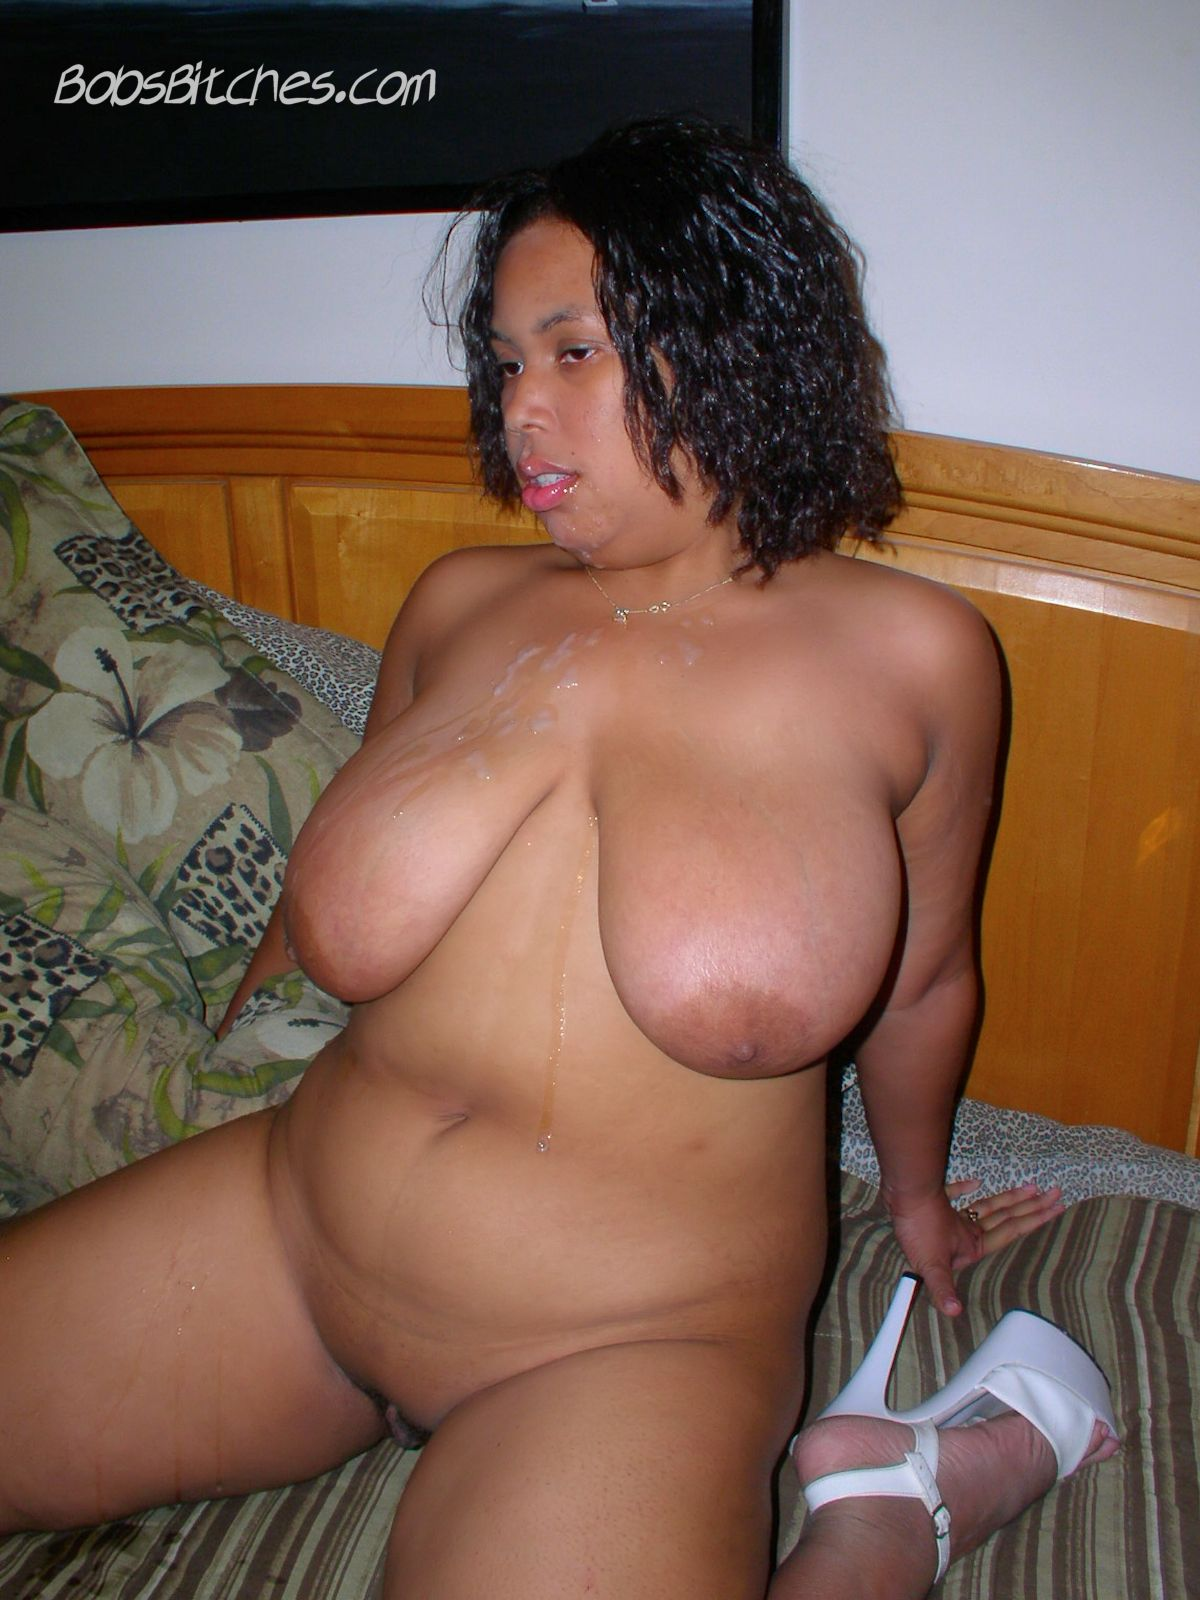 Big tit ebony milf get her huge boobs covred in cum after sucking dick.